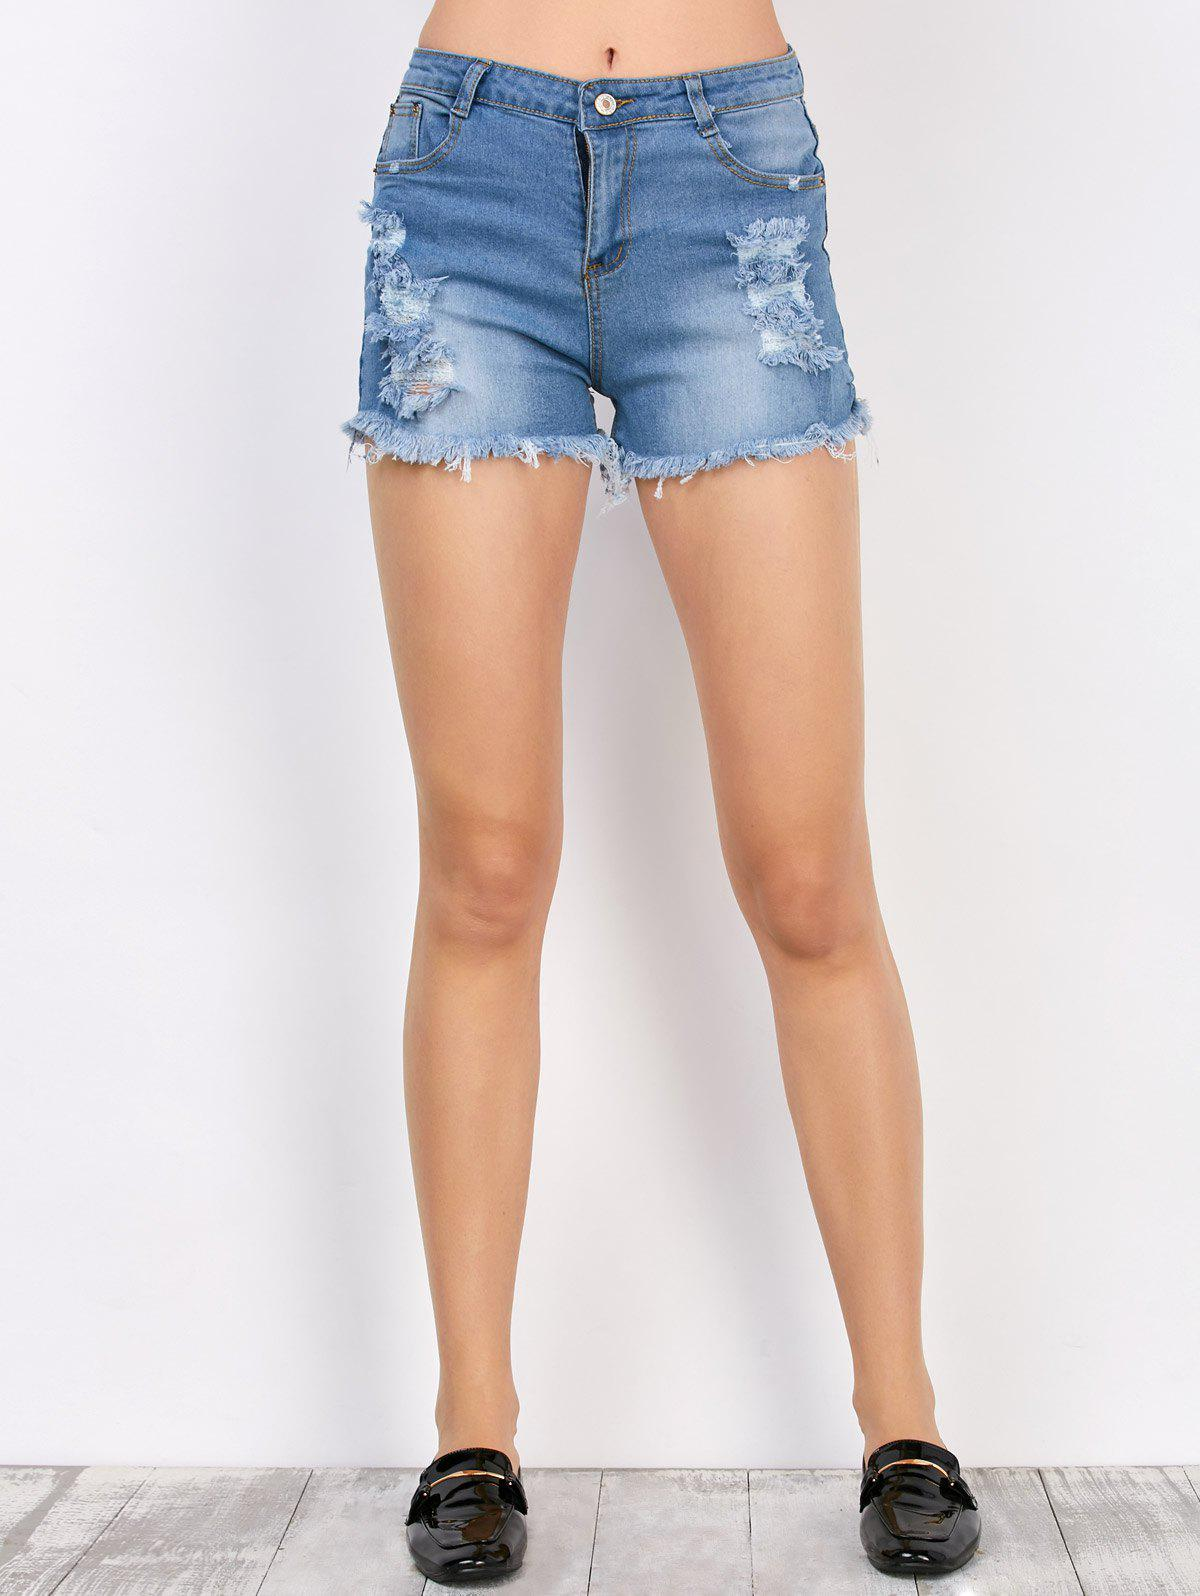 Denim Frayed Shorts with Pockets - DEEP BLUE XL